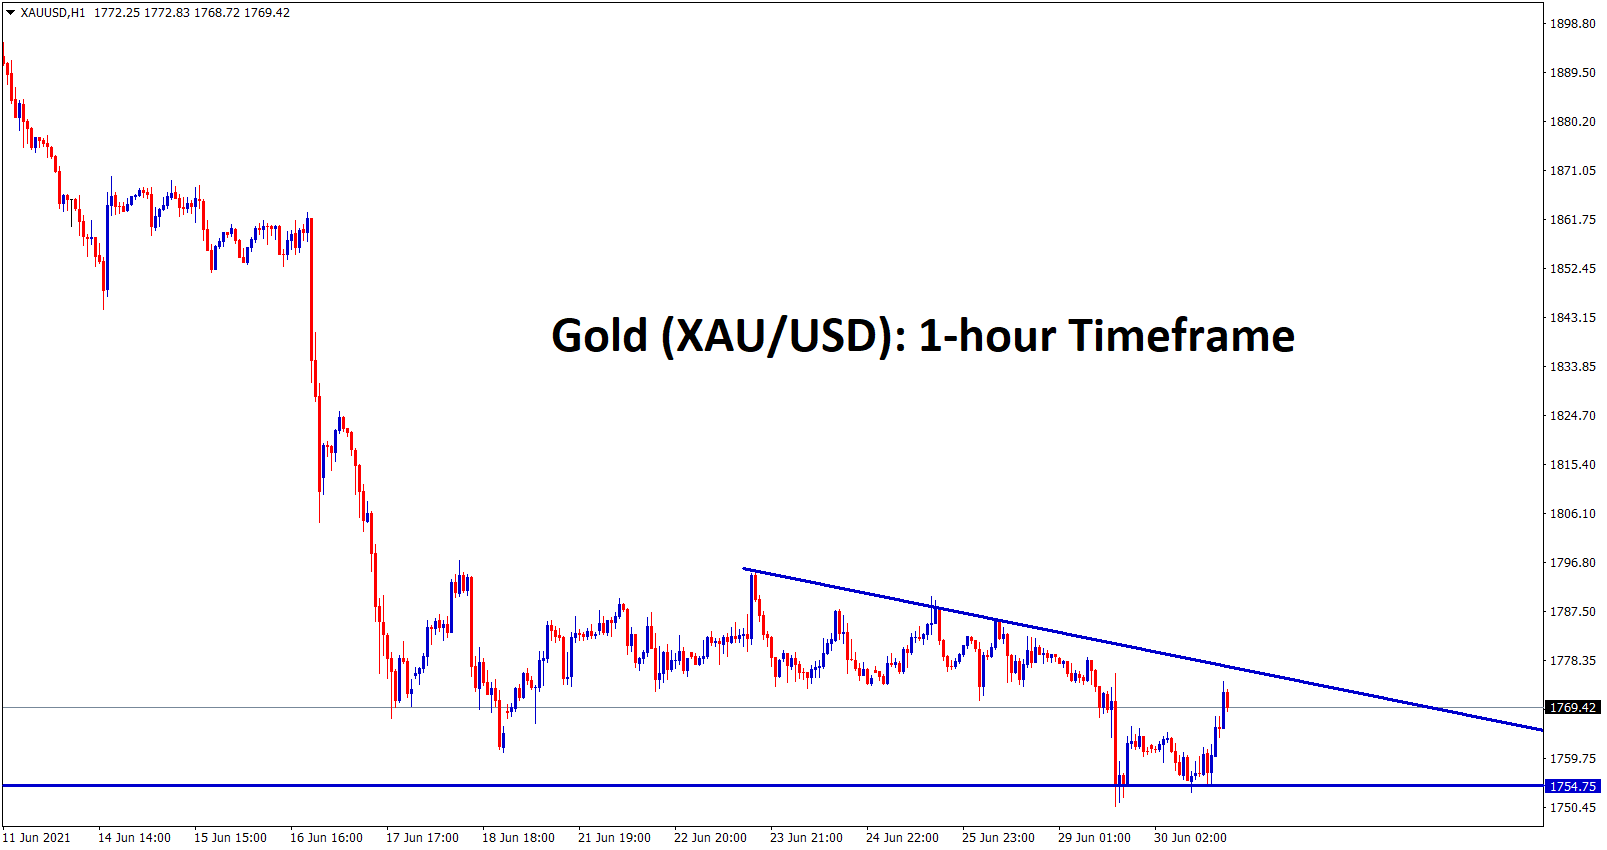 Gold XAUUSD is moving in a descending Triangle chart pattern